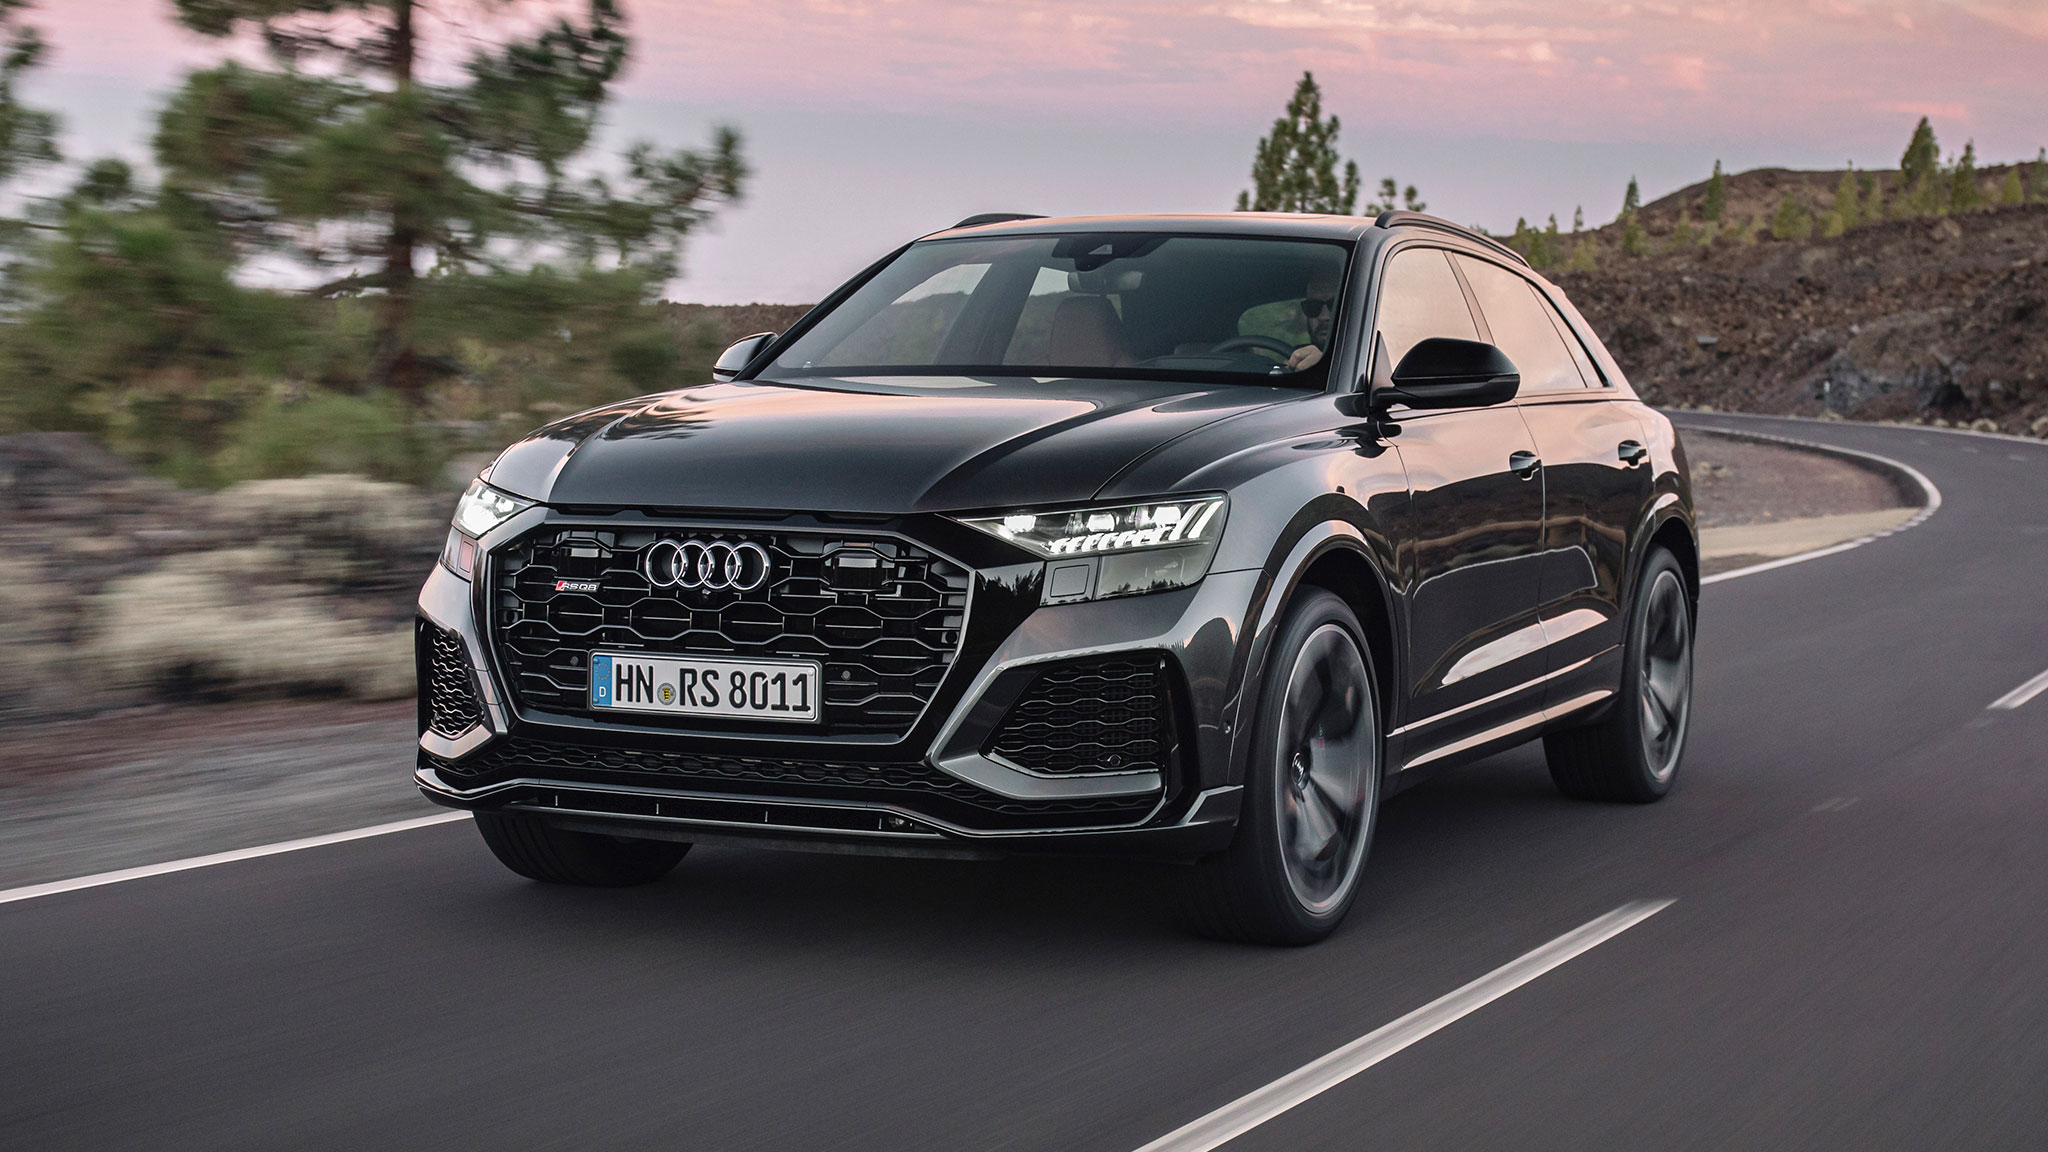 2020 Audi Rs Q8 First Drive A Compelling Enough 591 Hp Alternative To The Rs6 Avant Wagon